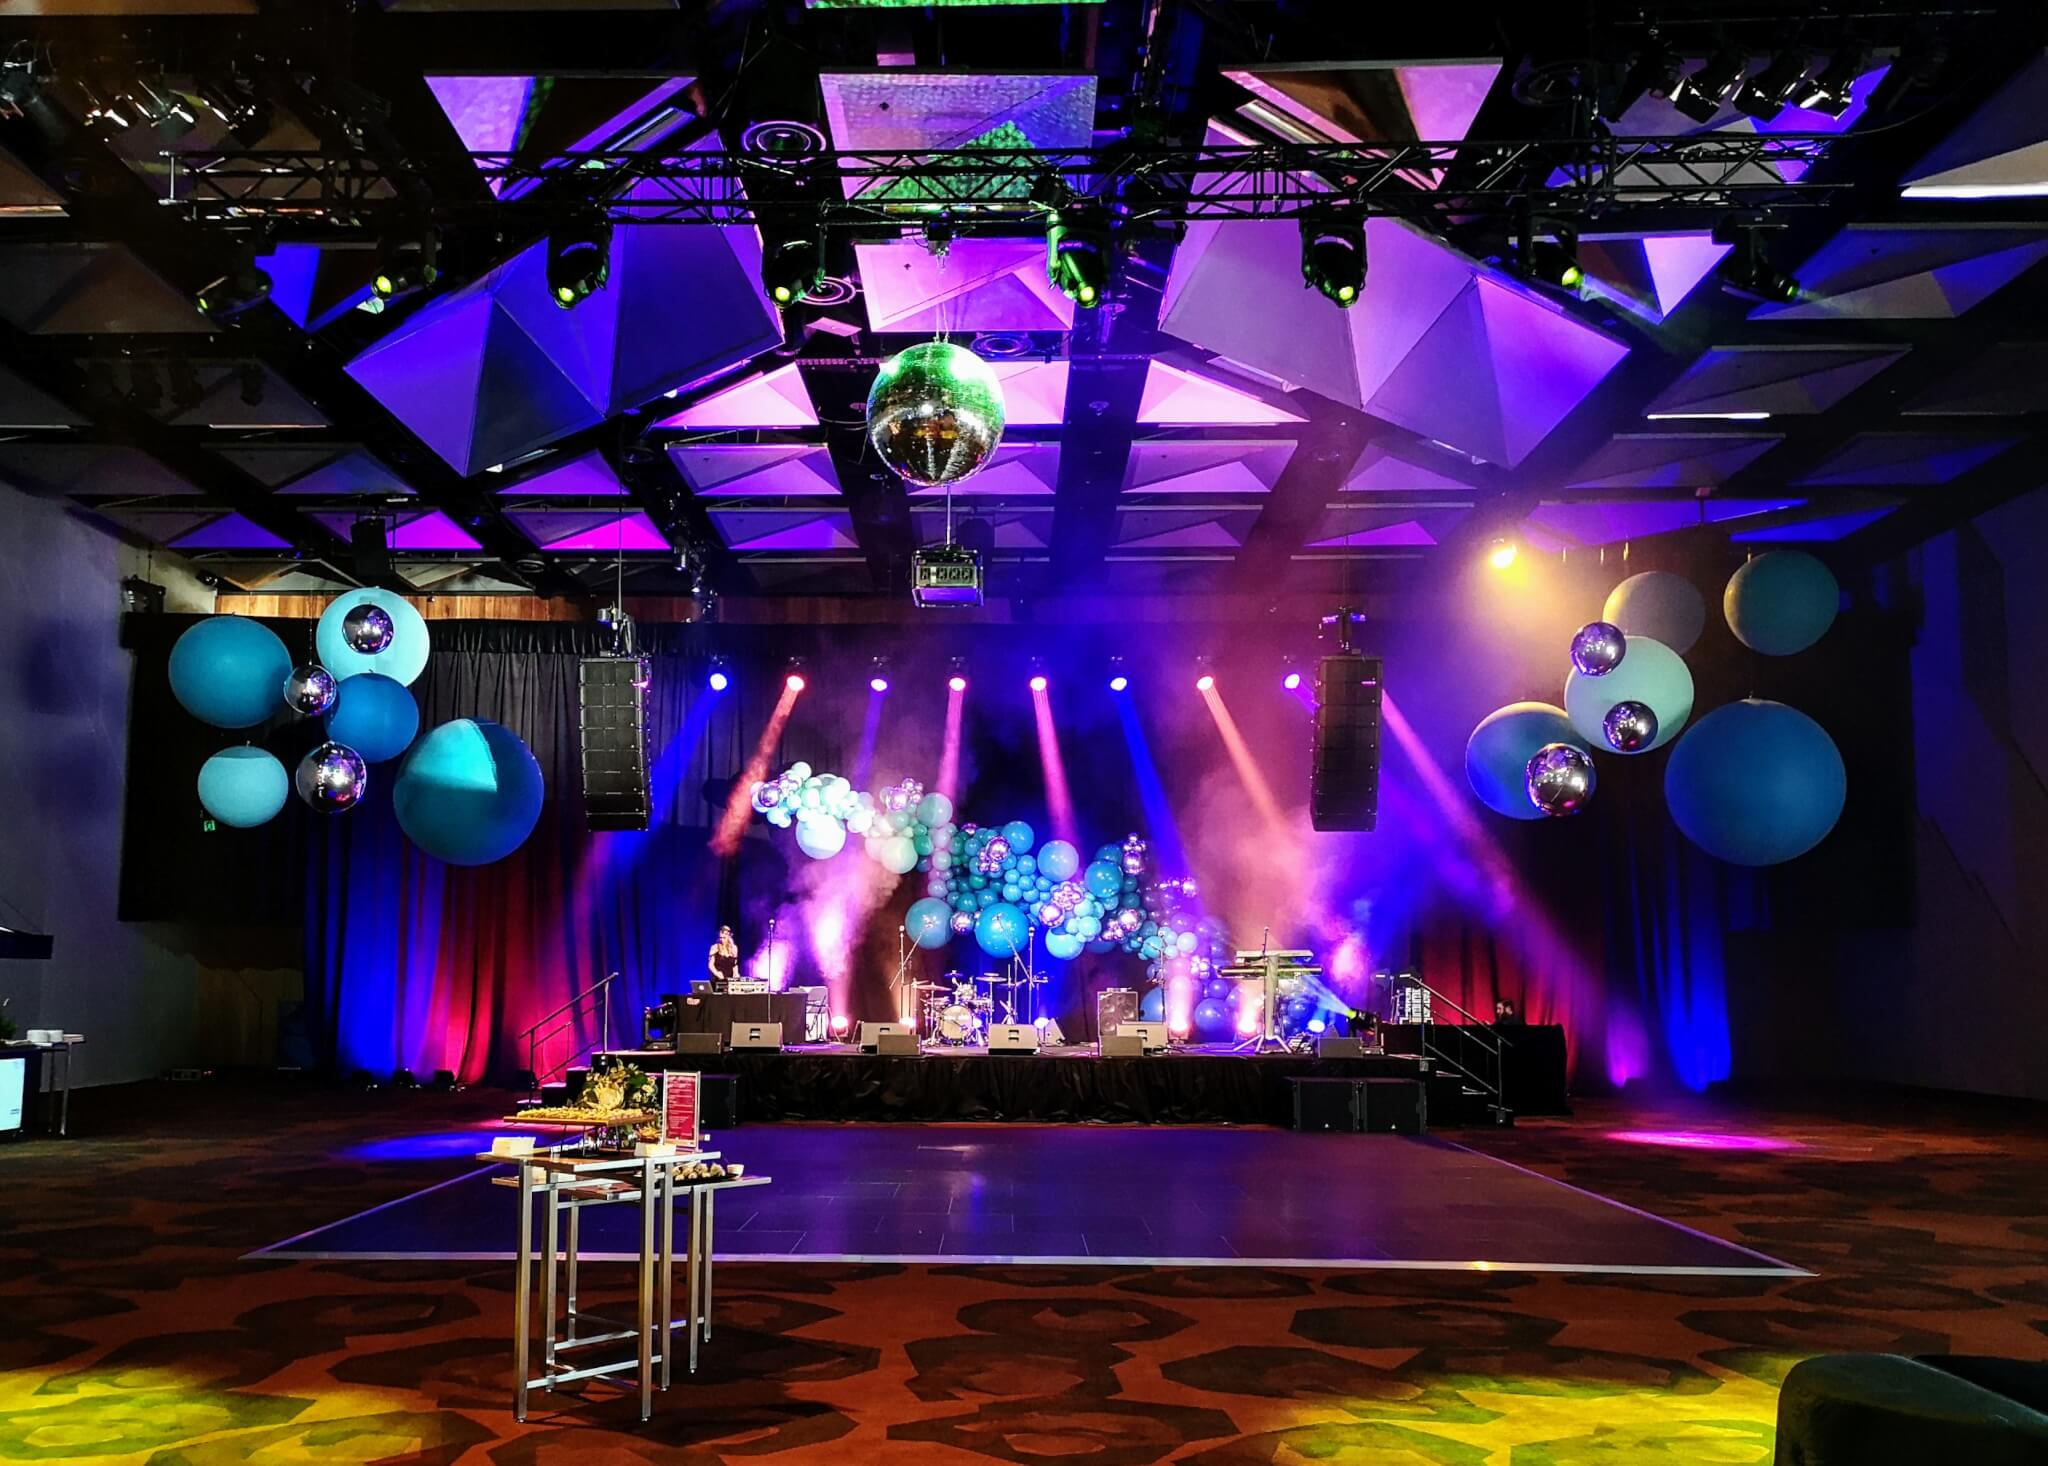 Conference entertainment @ MCEC - Melbourne Convention & Exhibition Centre